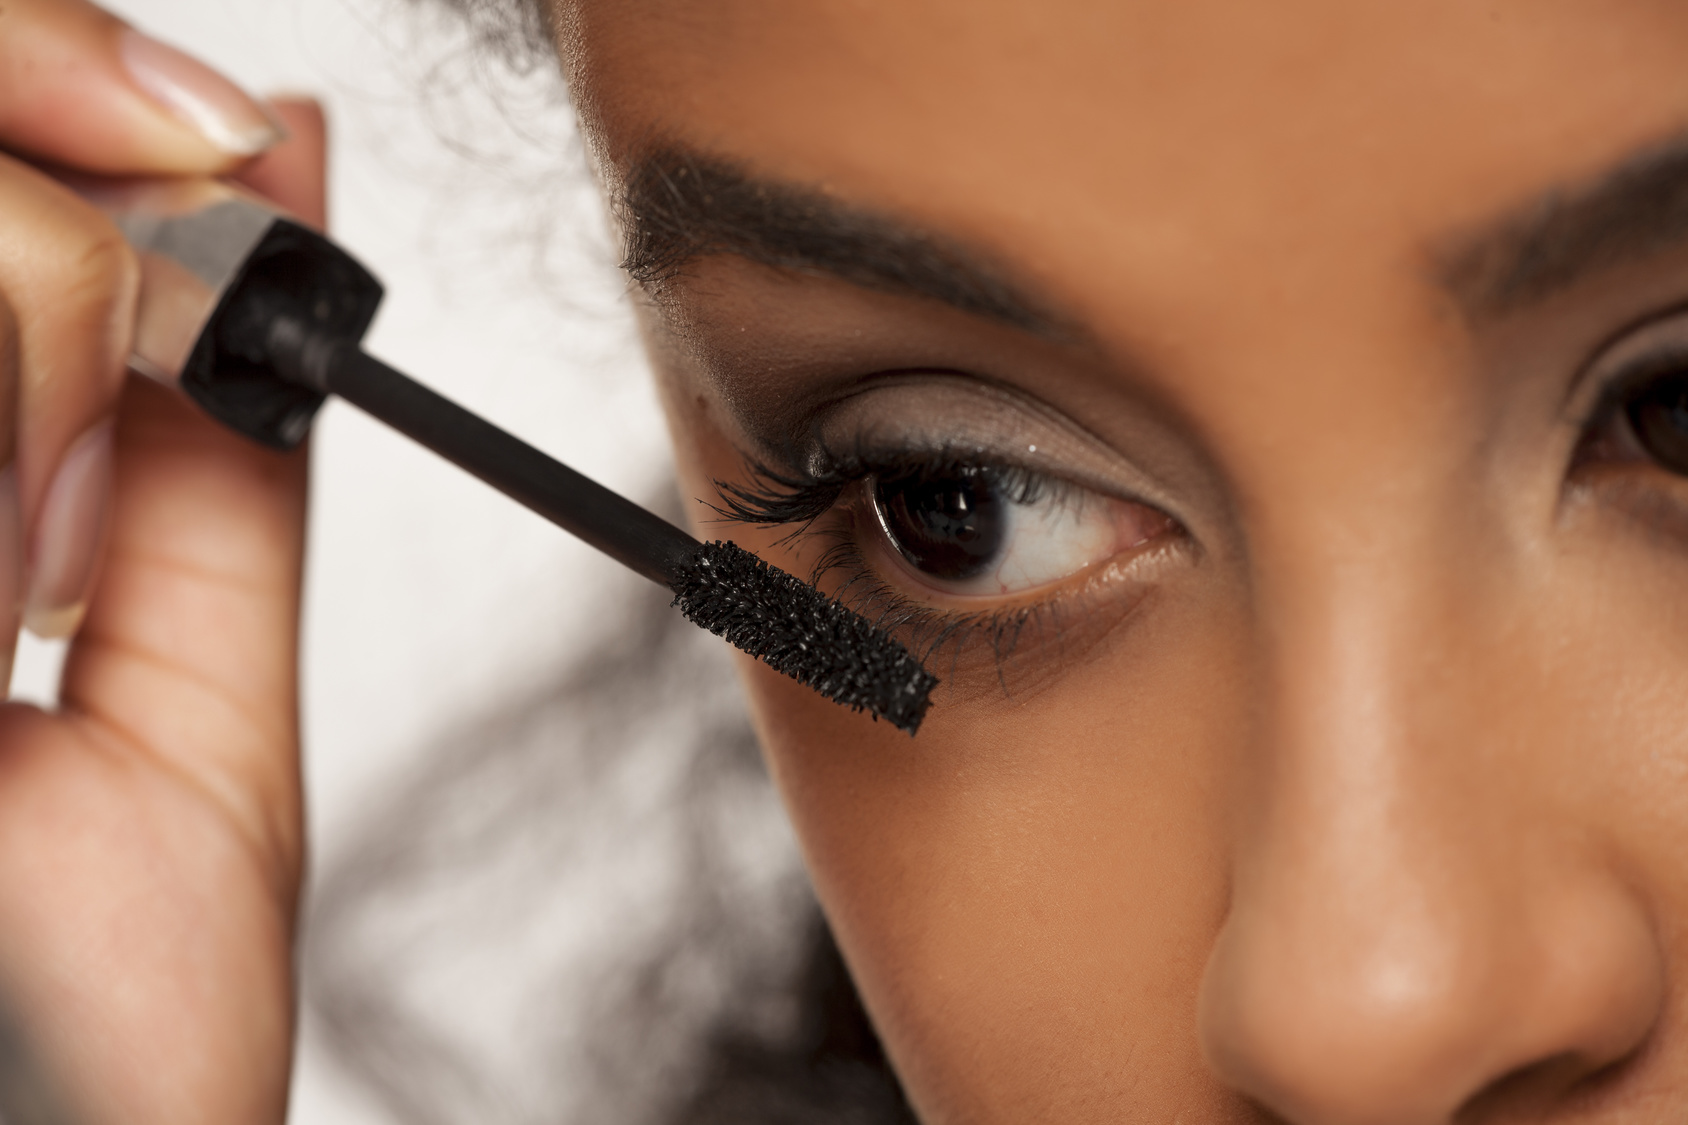 8 Tips For Eye Makeup Safety Focus A Health Blog From Mass Eye